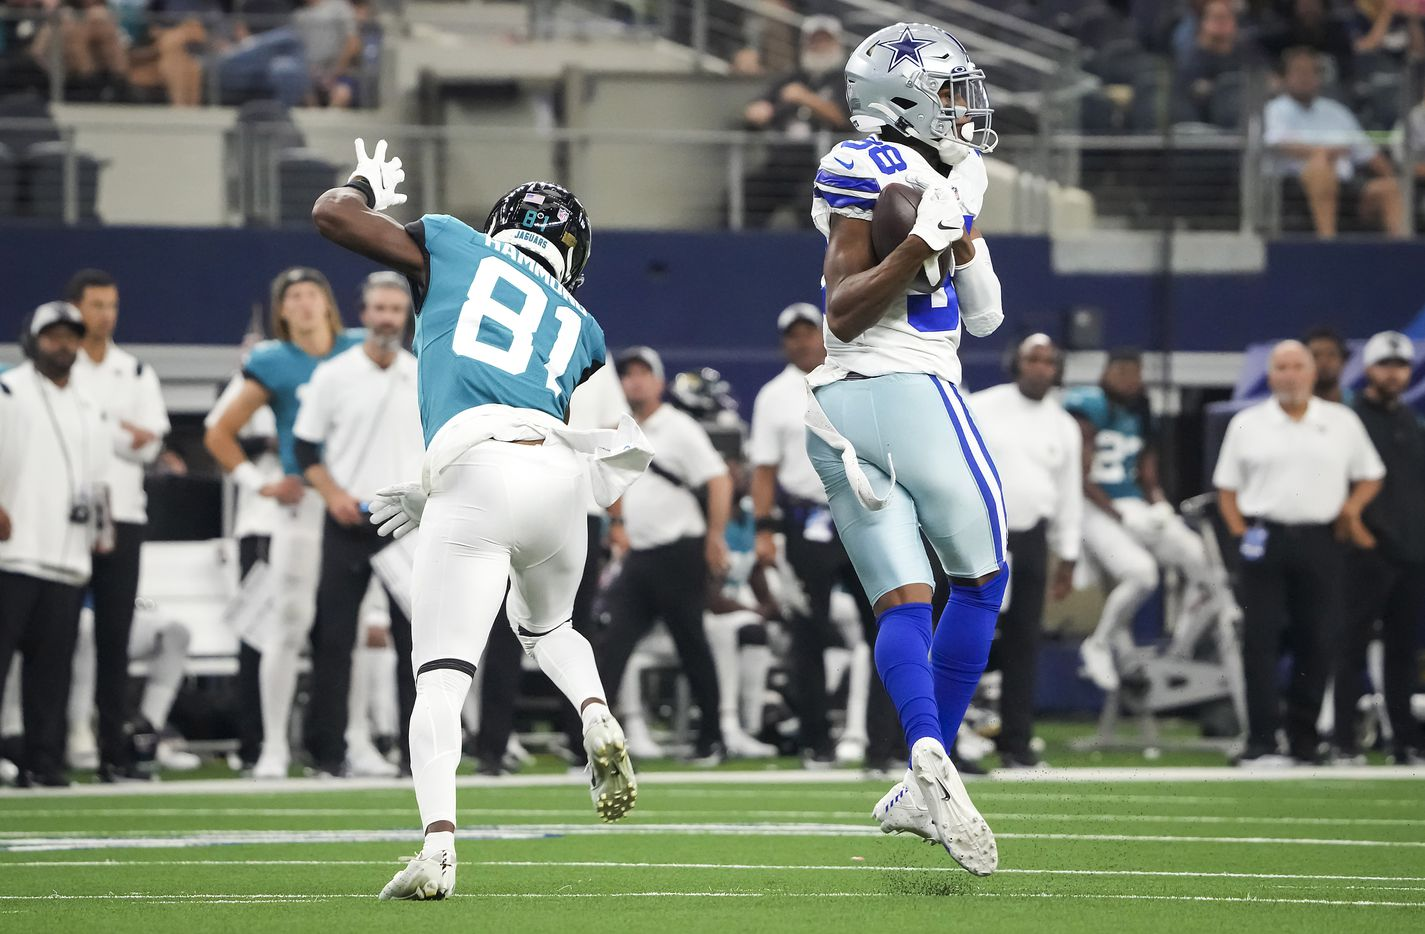 Dallas Cowboys cornerback Israel Mukuamu (38) intercepts a pass intended for Jacksonville Jaguars wide receiver Josh Hammond (81) during the first half of a preseason NFL football game at AT&T Stadium on Sunday, Aug. 29, 2021, in Arlington. (Smiley N. Pool/The Dallas Morning News)